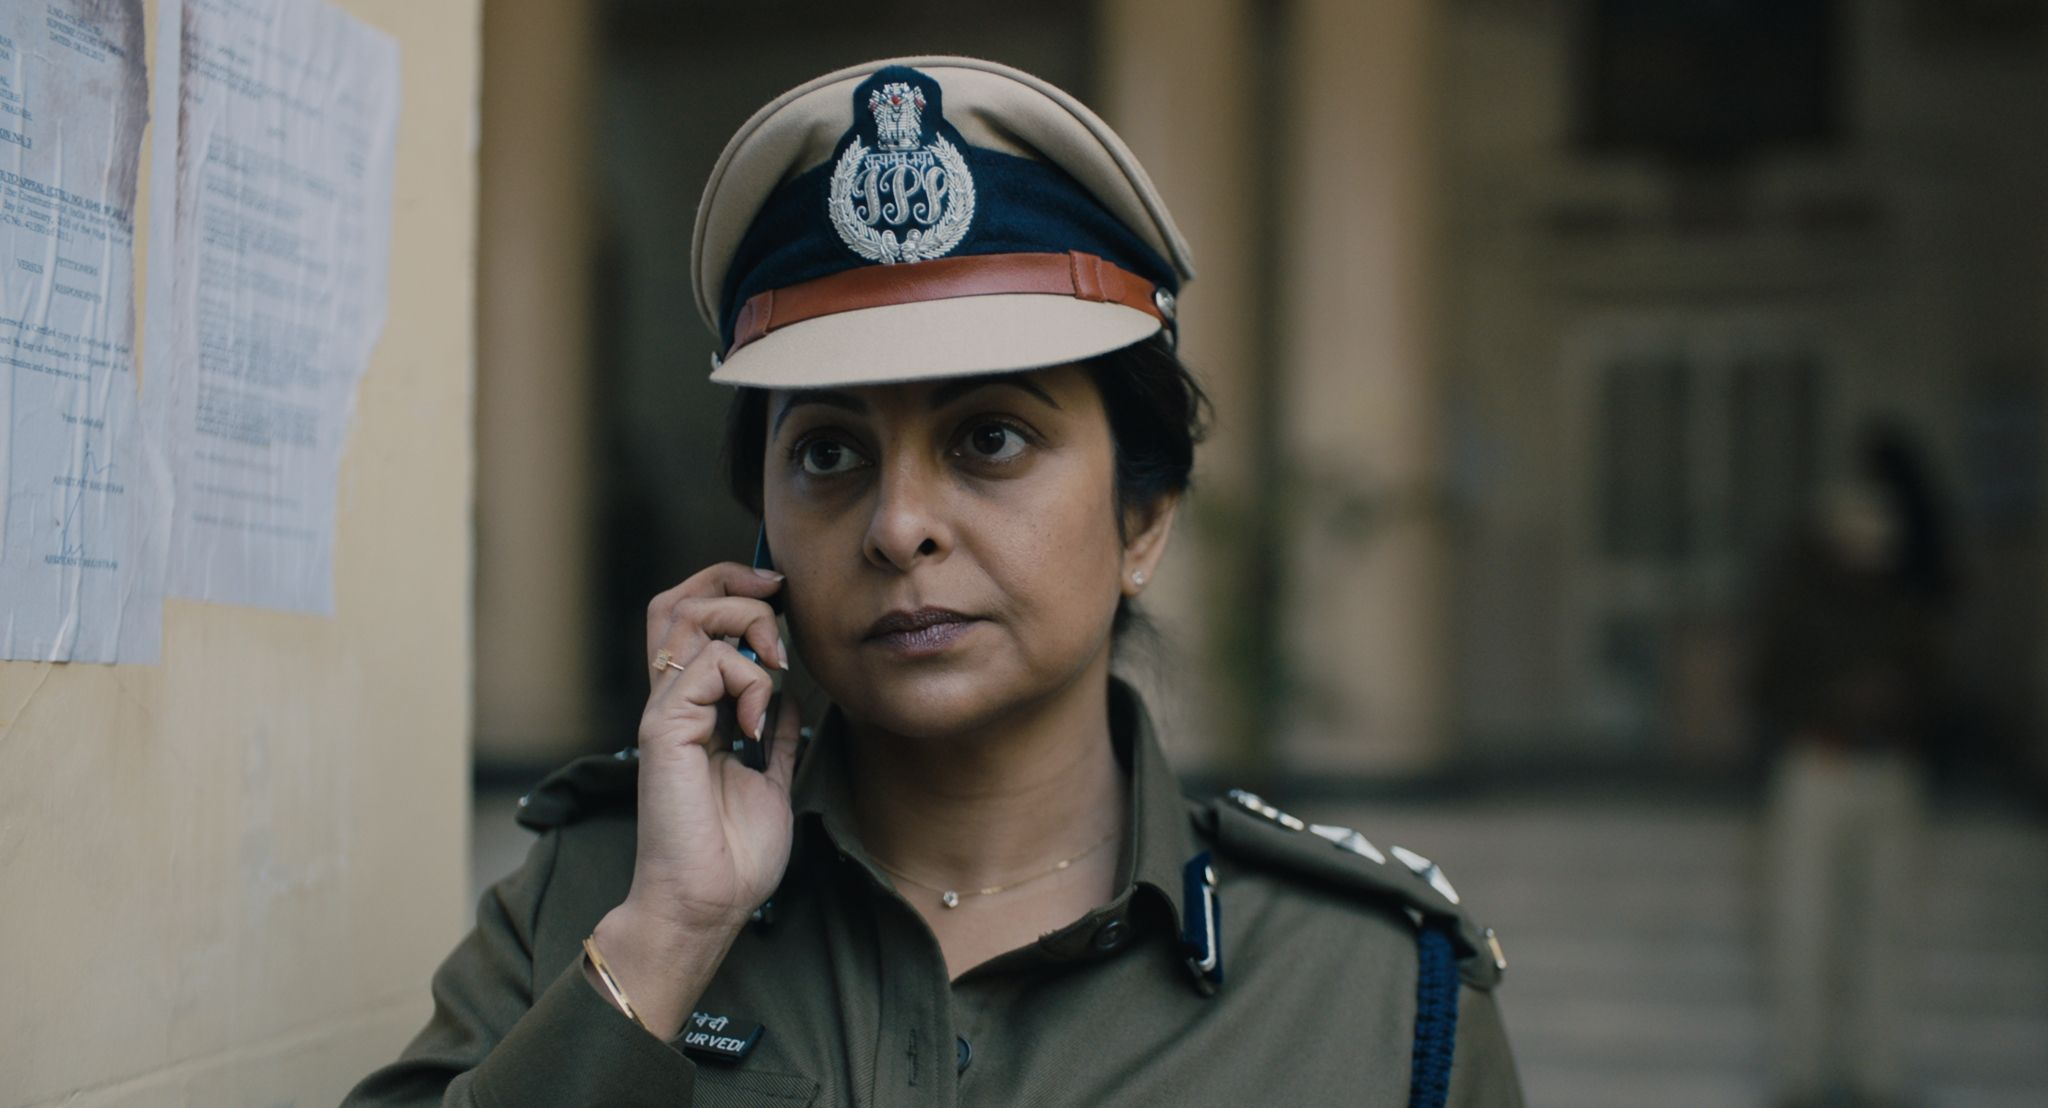 The True Story Behind Netflix's 'Delhi Crime' Is Absolutely Horrific